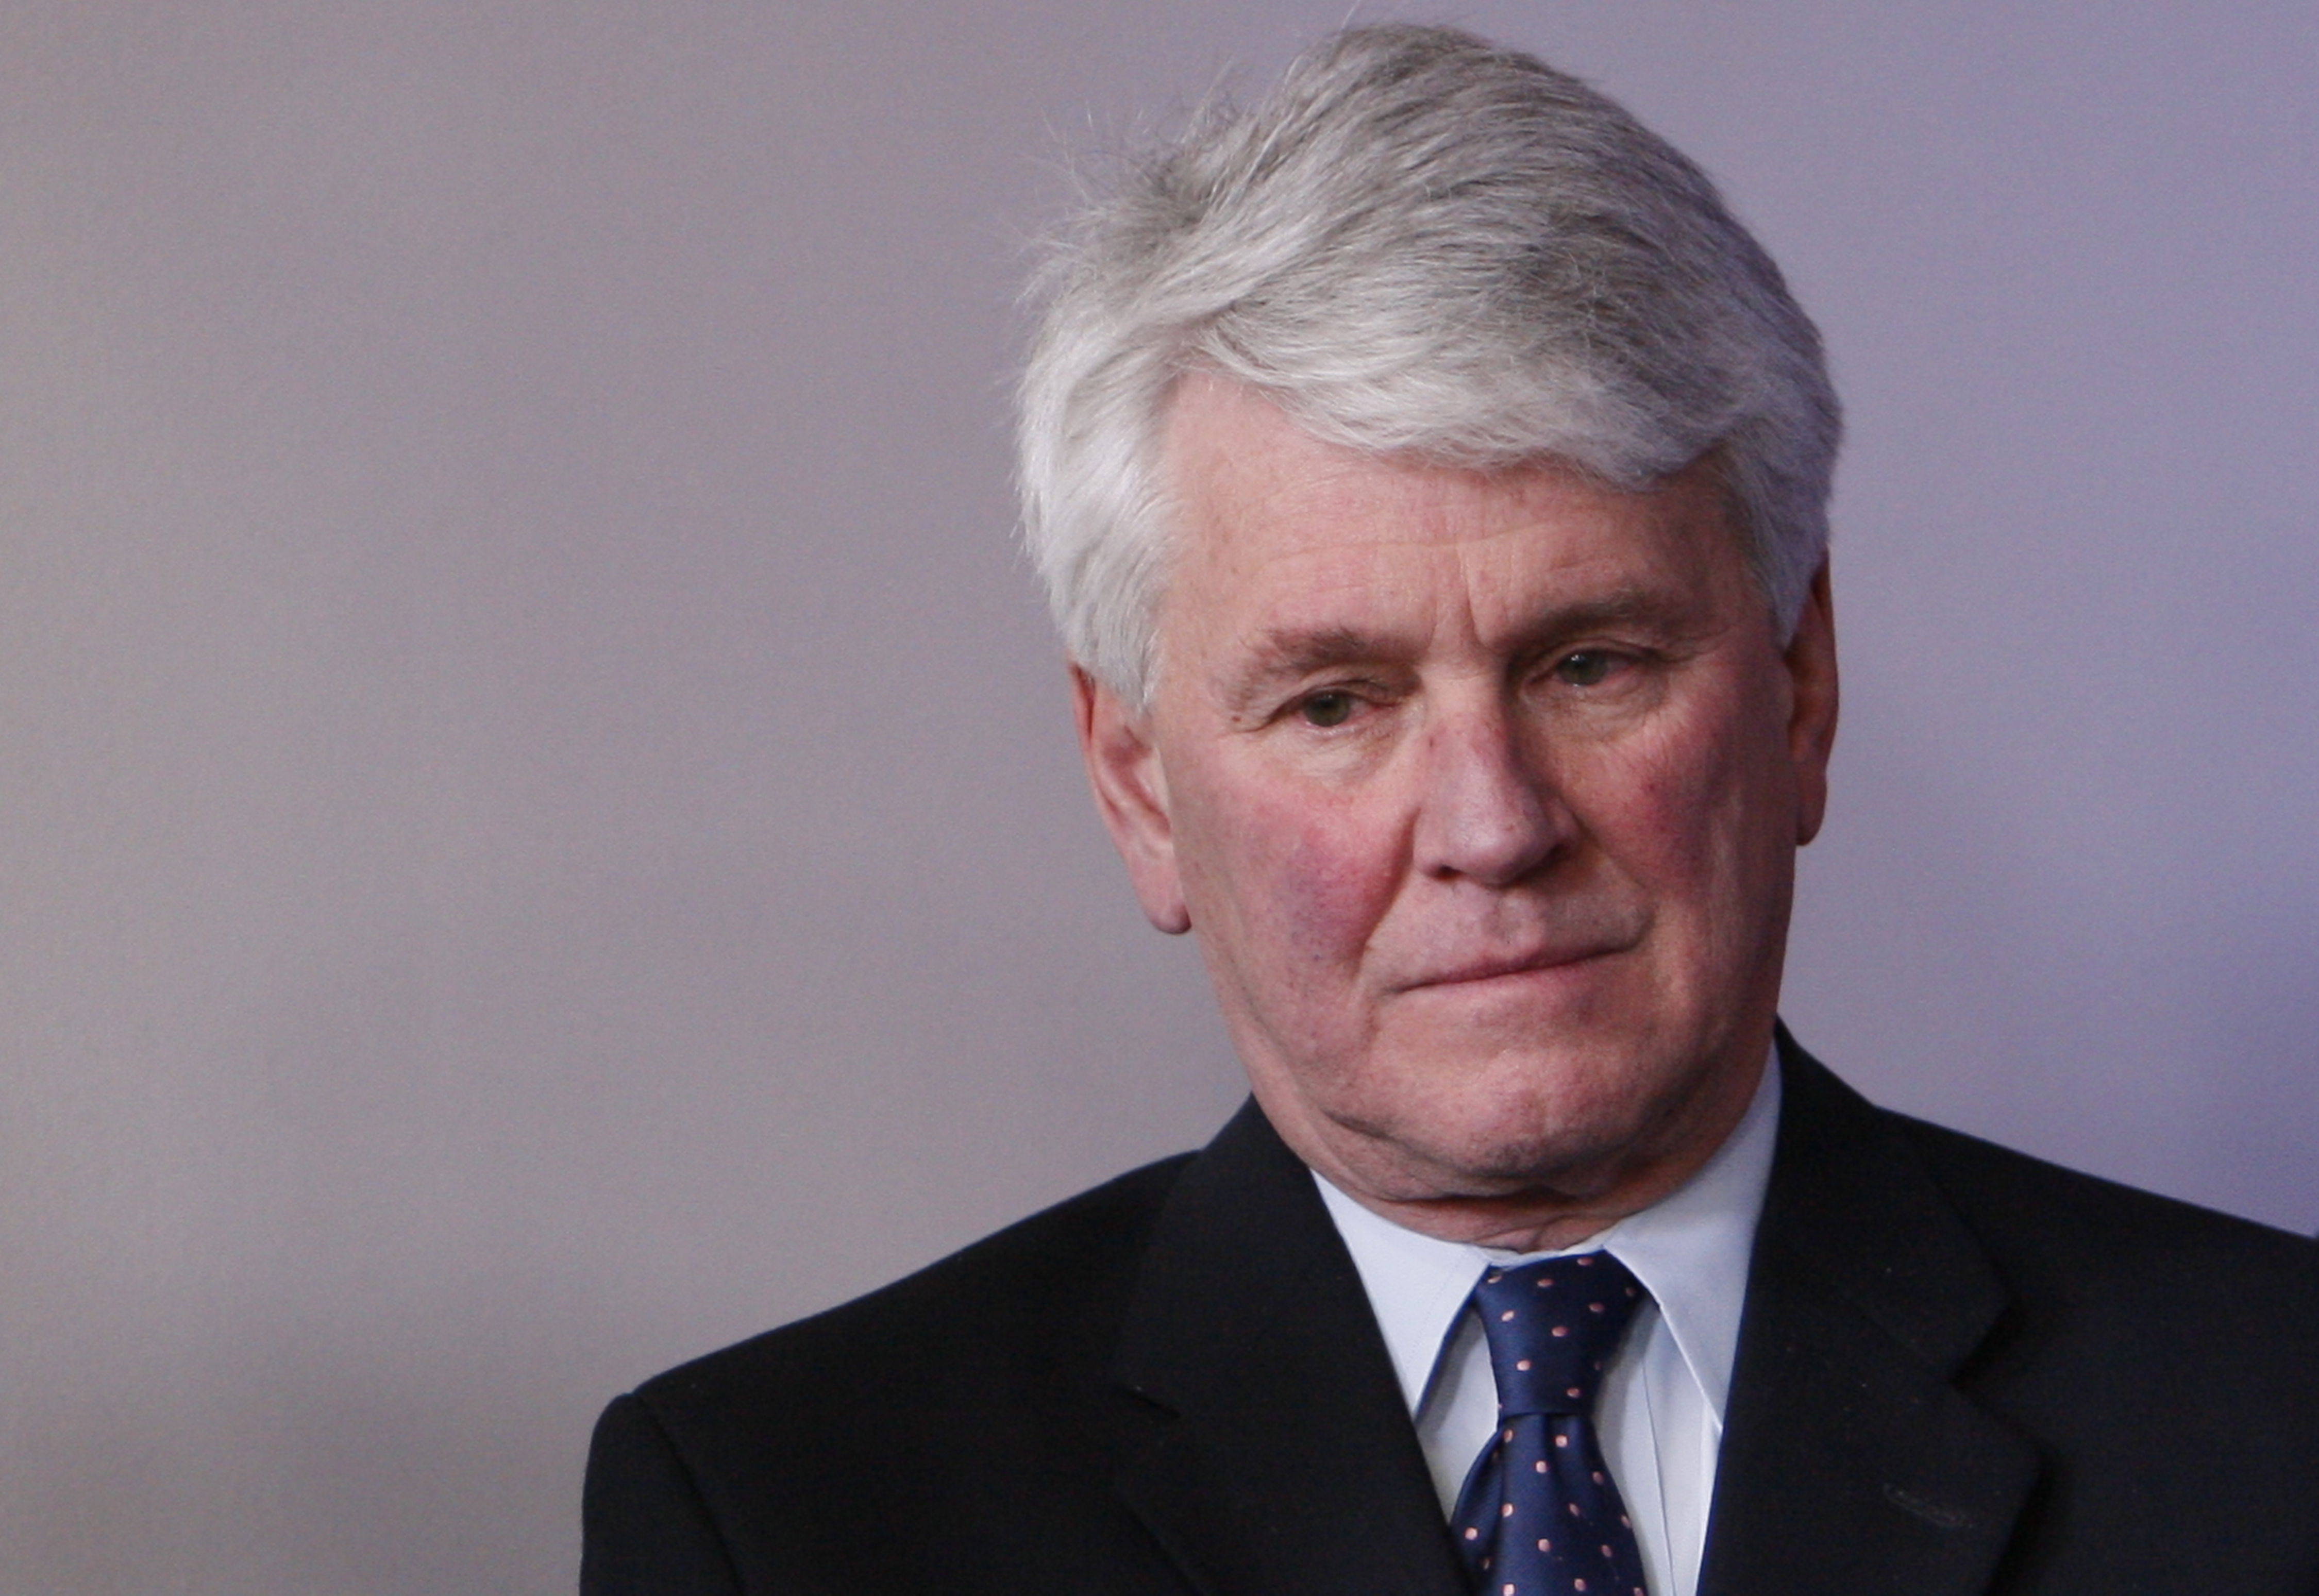 washingtonpost.com - Tom Hamburger - Former White House counsel Gregory Craig under scrutiny by prosecutors in offshoot of Mueller probe